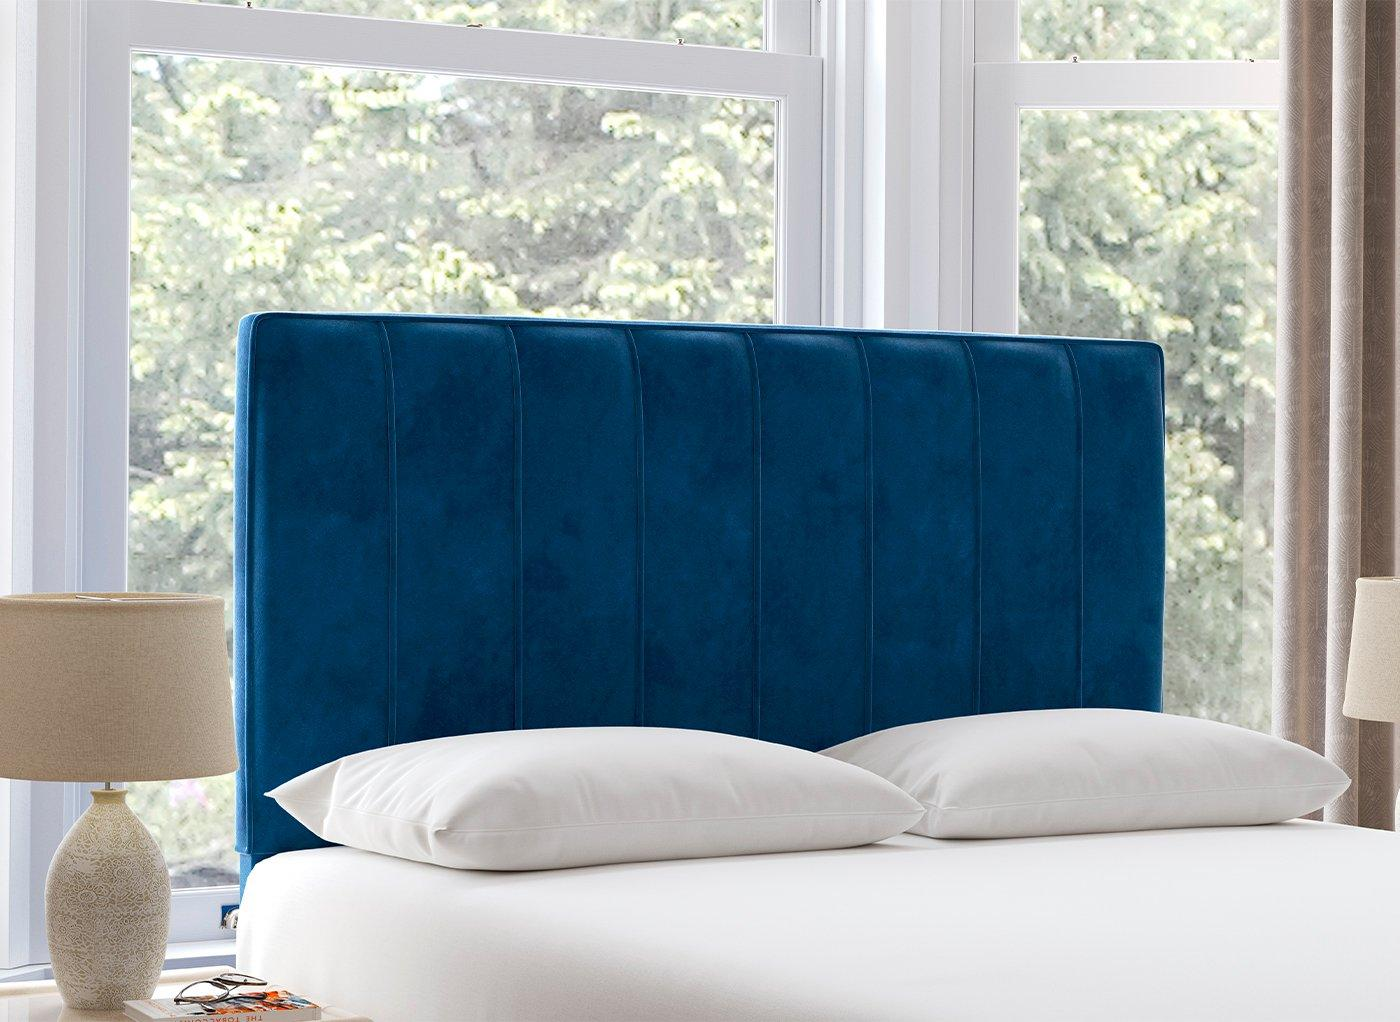 Nocturne 4'0 Full Height H/B Plush Navy 4'0 Small double BLUE